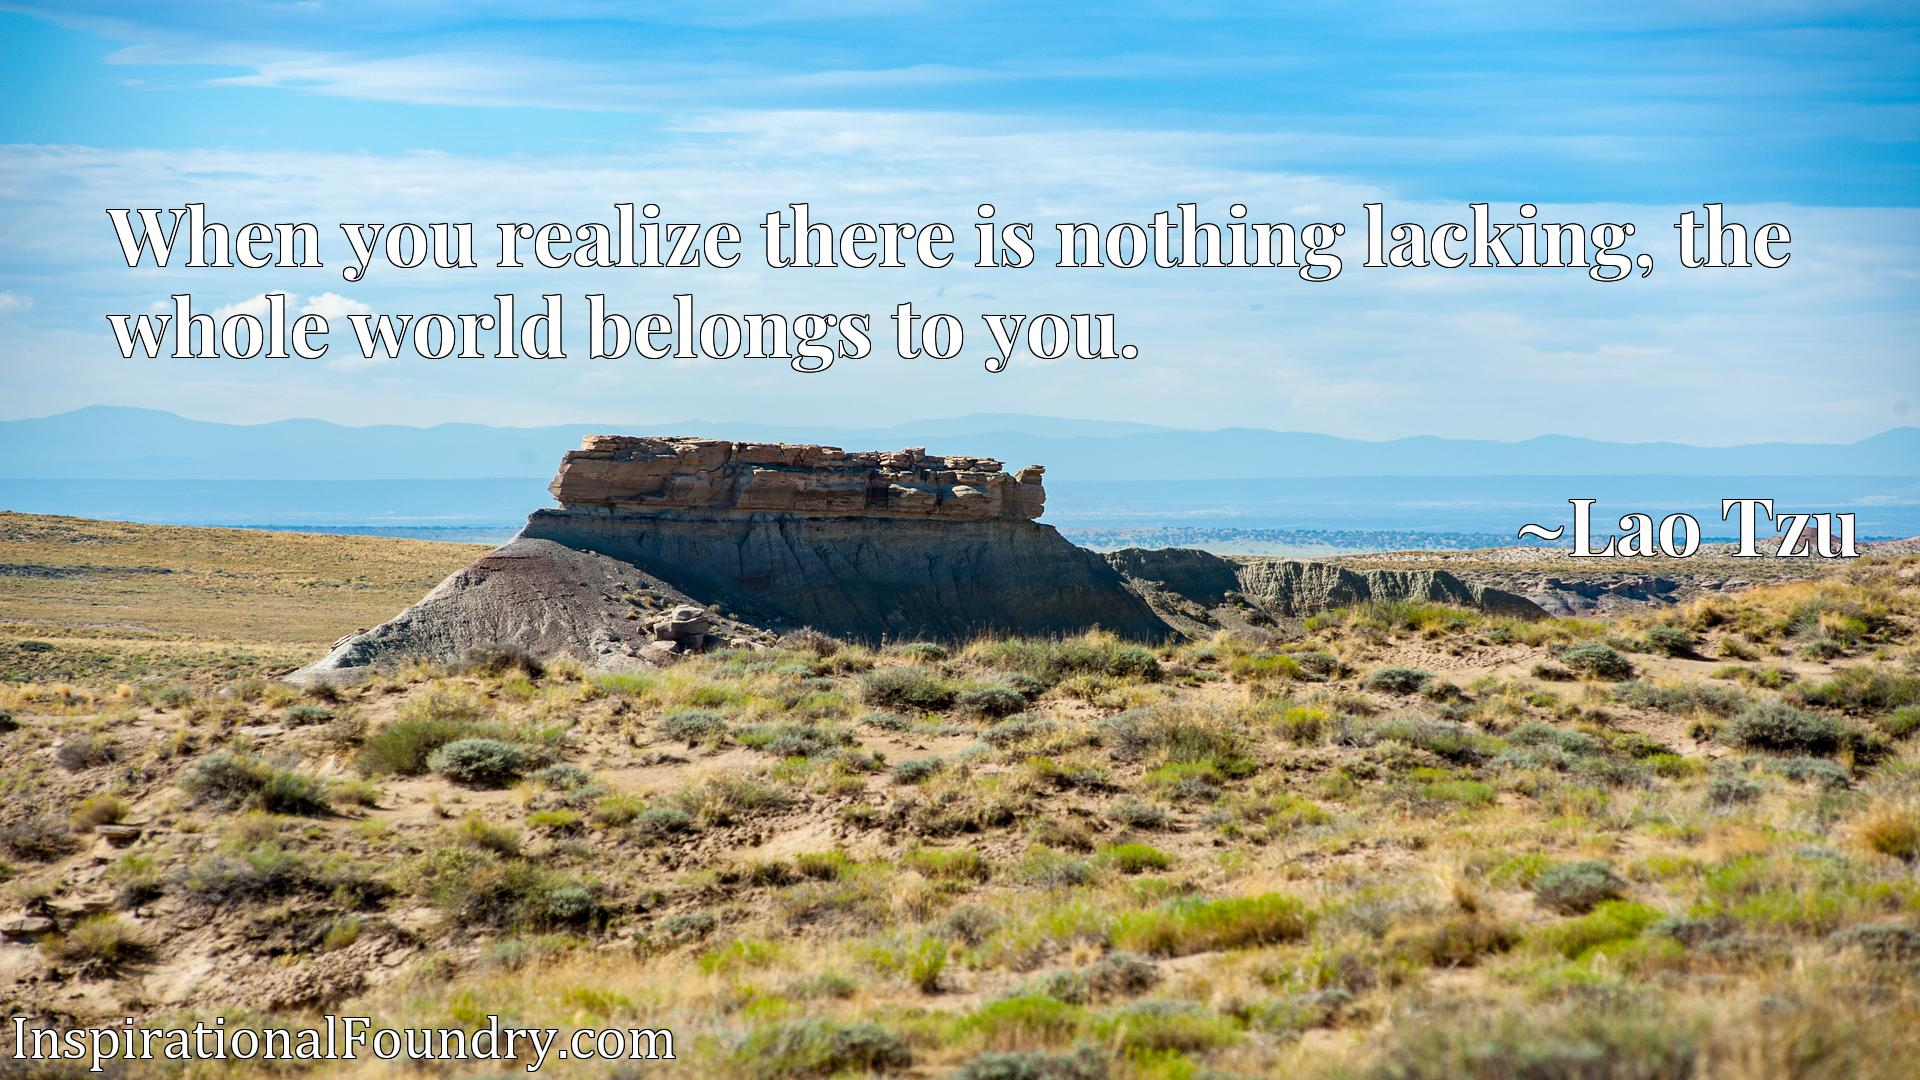 When you realize there is nothing lacking, the whole world belongs to you.